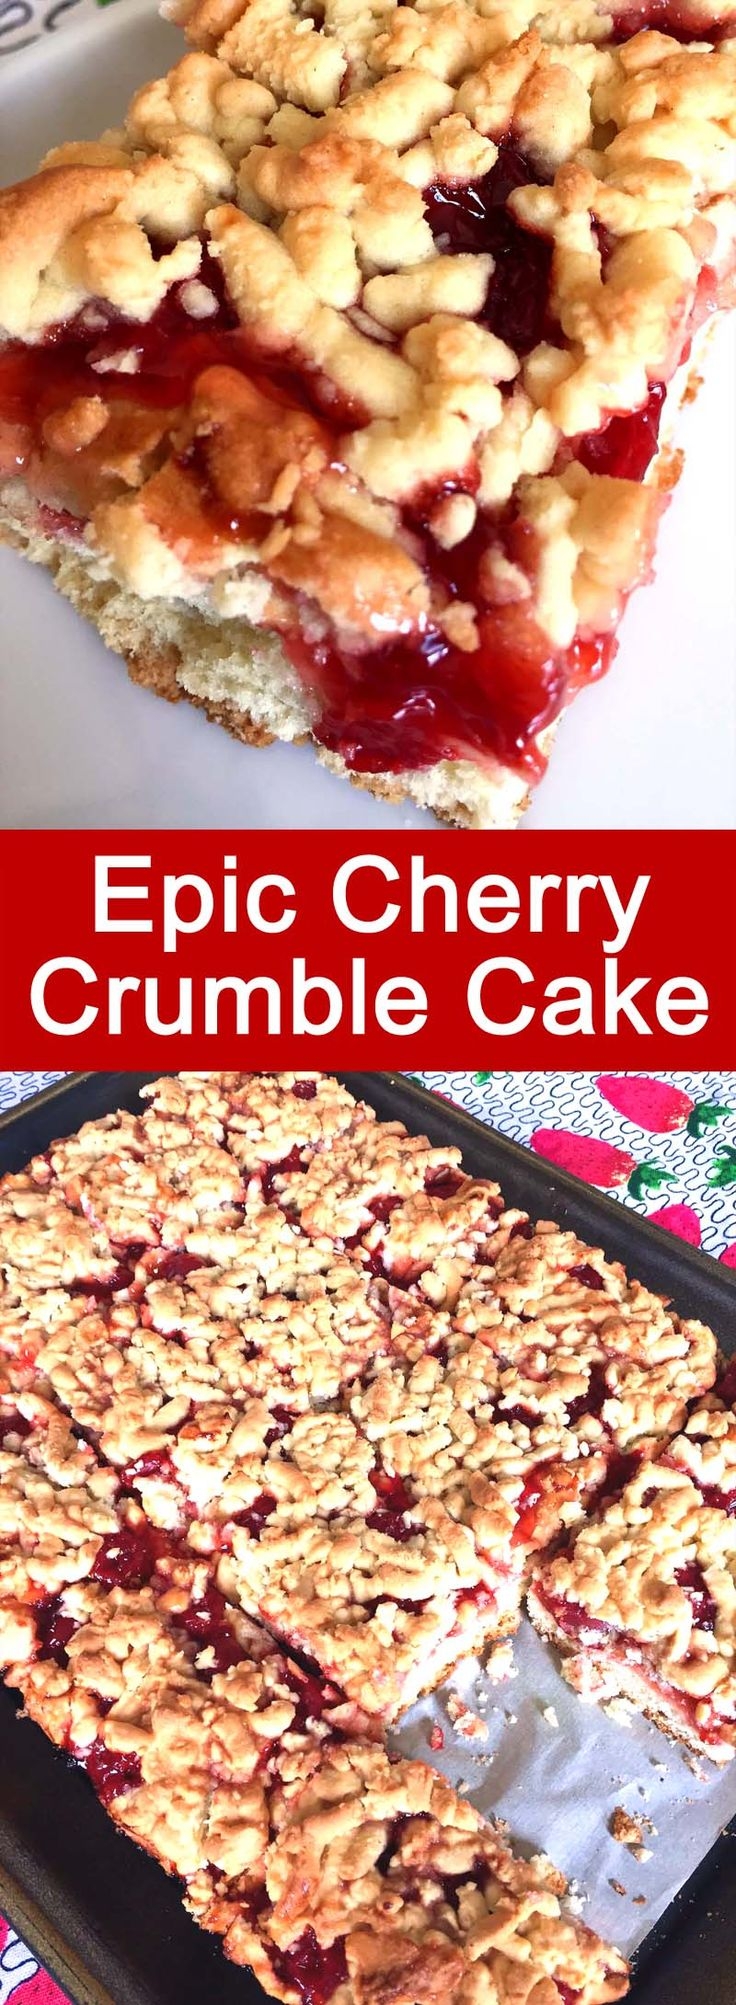 I love this cherry crumble cake! This is a perfect summer cake recipe!  So easy to make and so yummy!